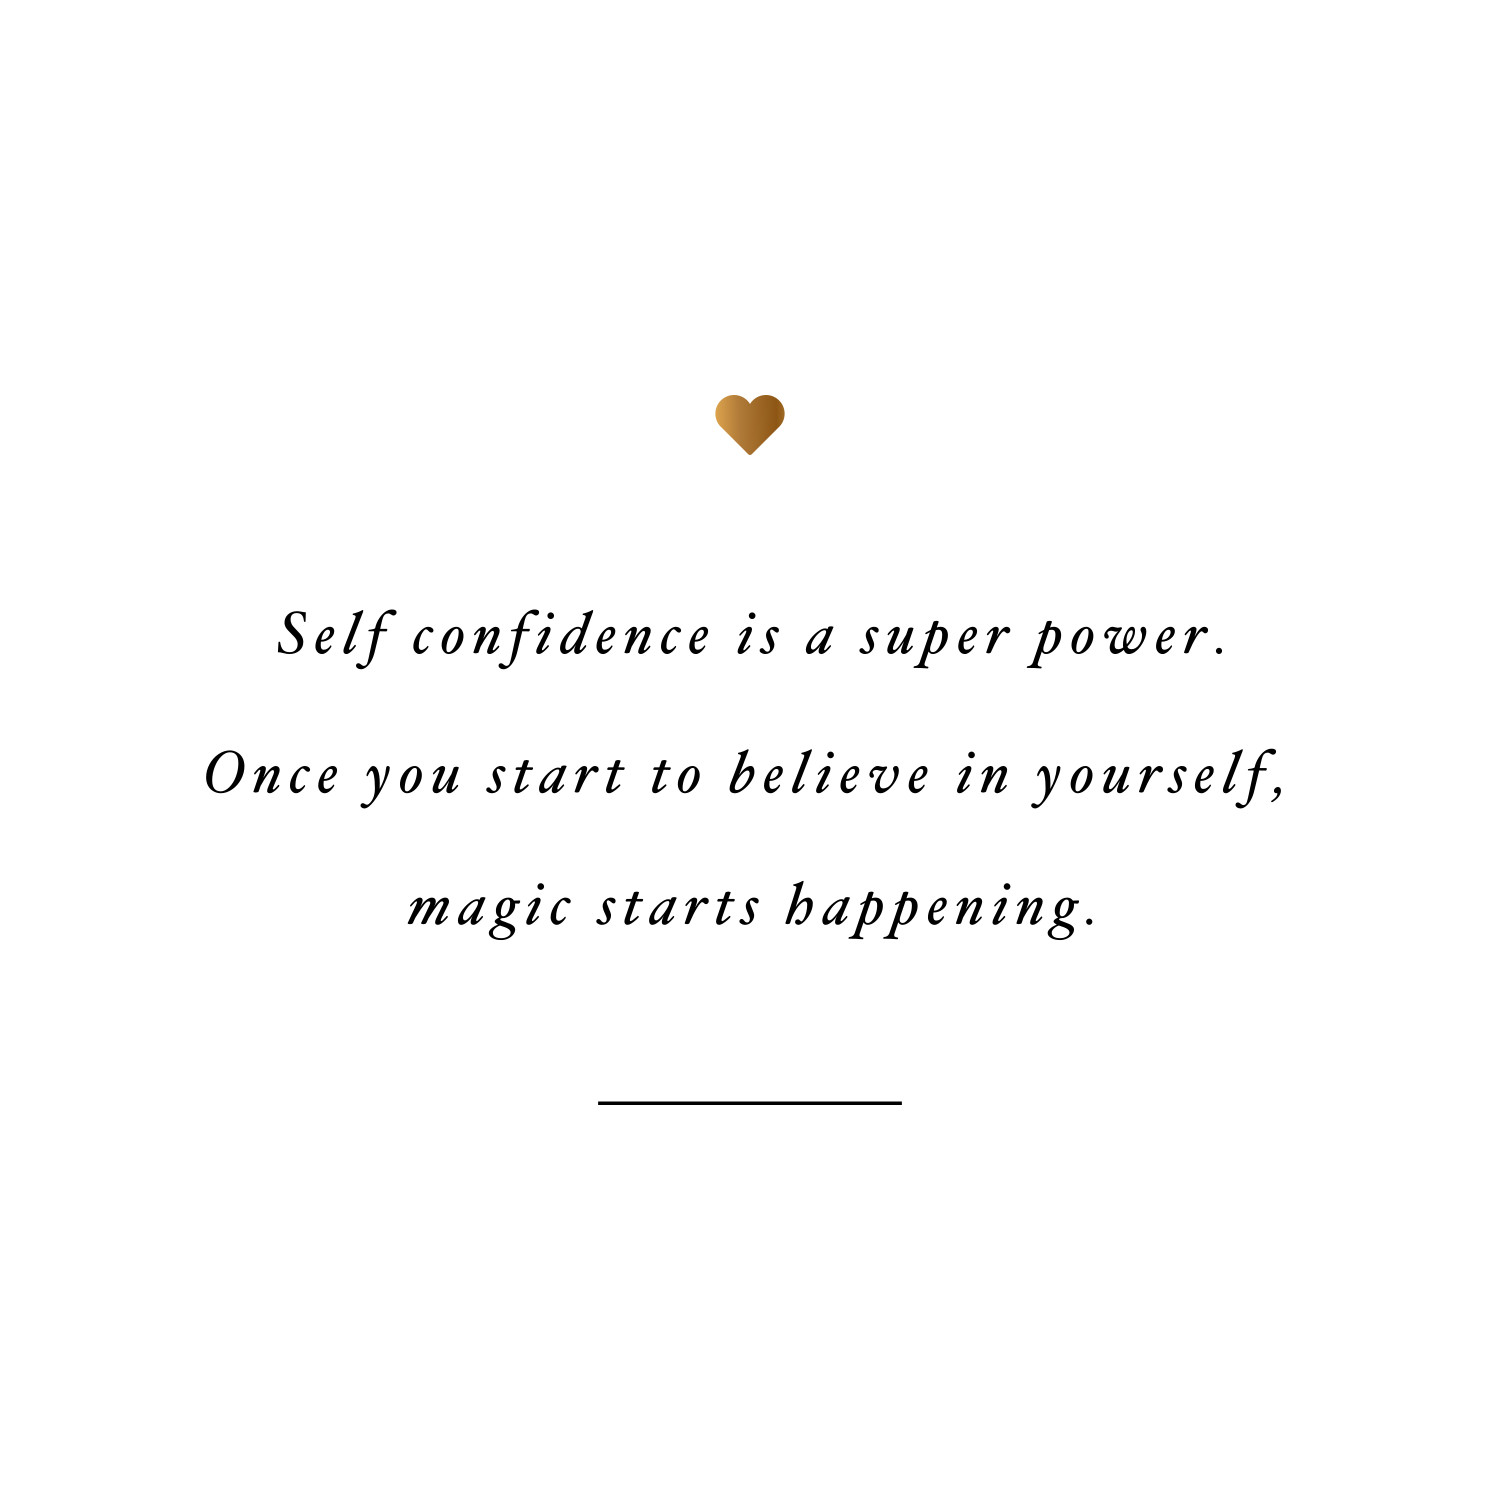 self confidence is a super power exercise and training